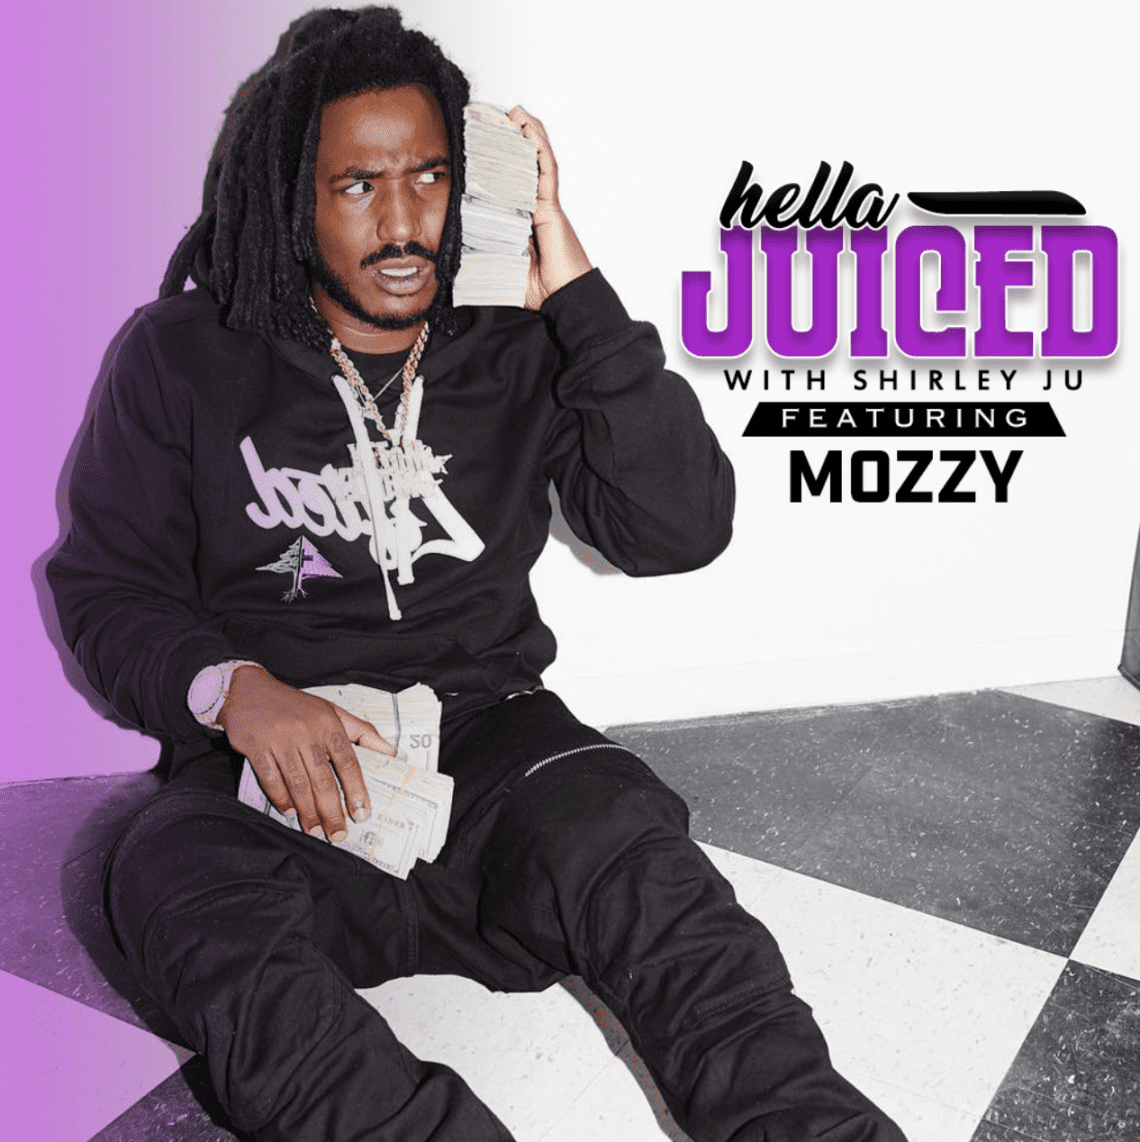 Hella Juiced: Mozzy